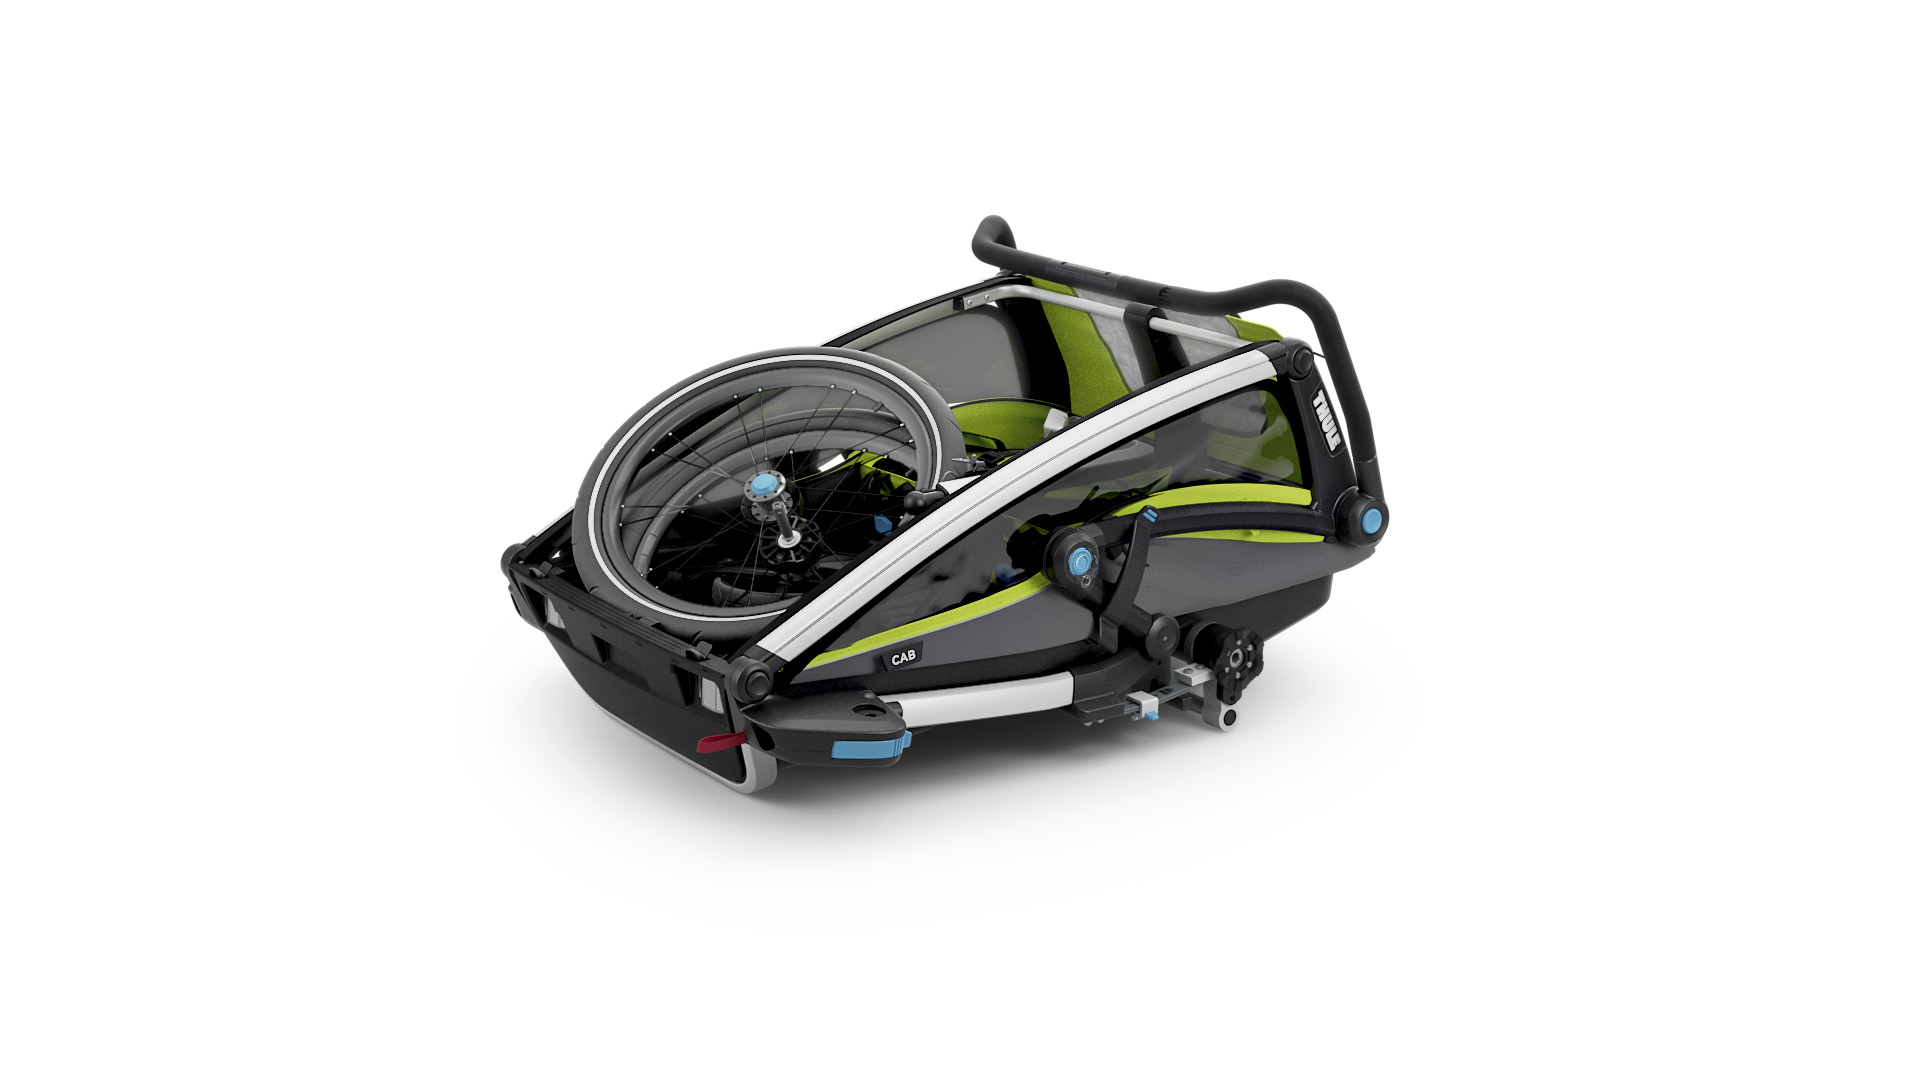 Thule_Chariot_Cab2_Chartreuse_Strolling_FOLDED_10204001